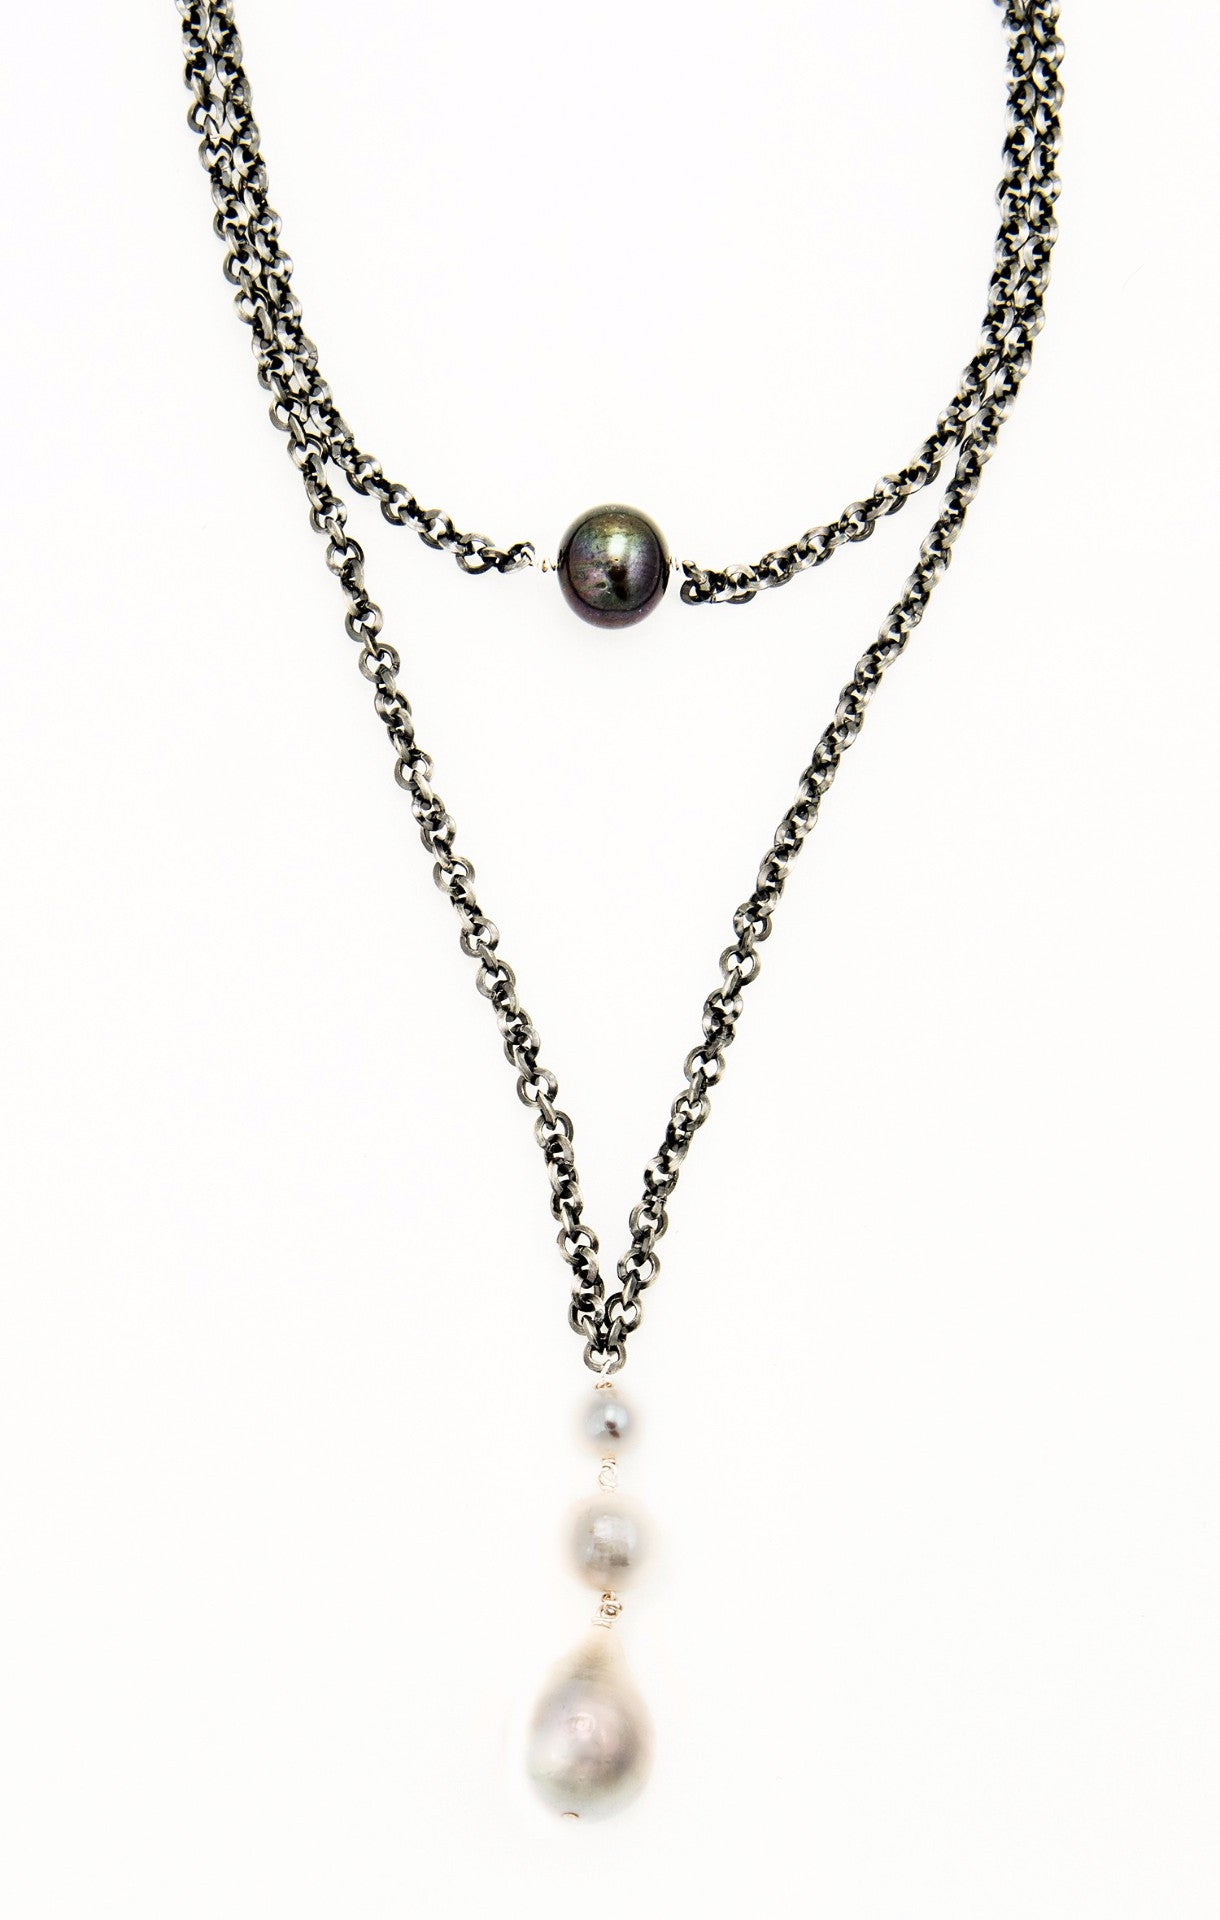 Double rhodium plated  chain with Fresh Water Pearl